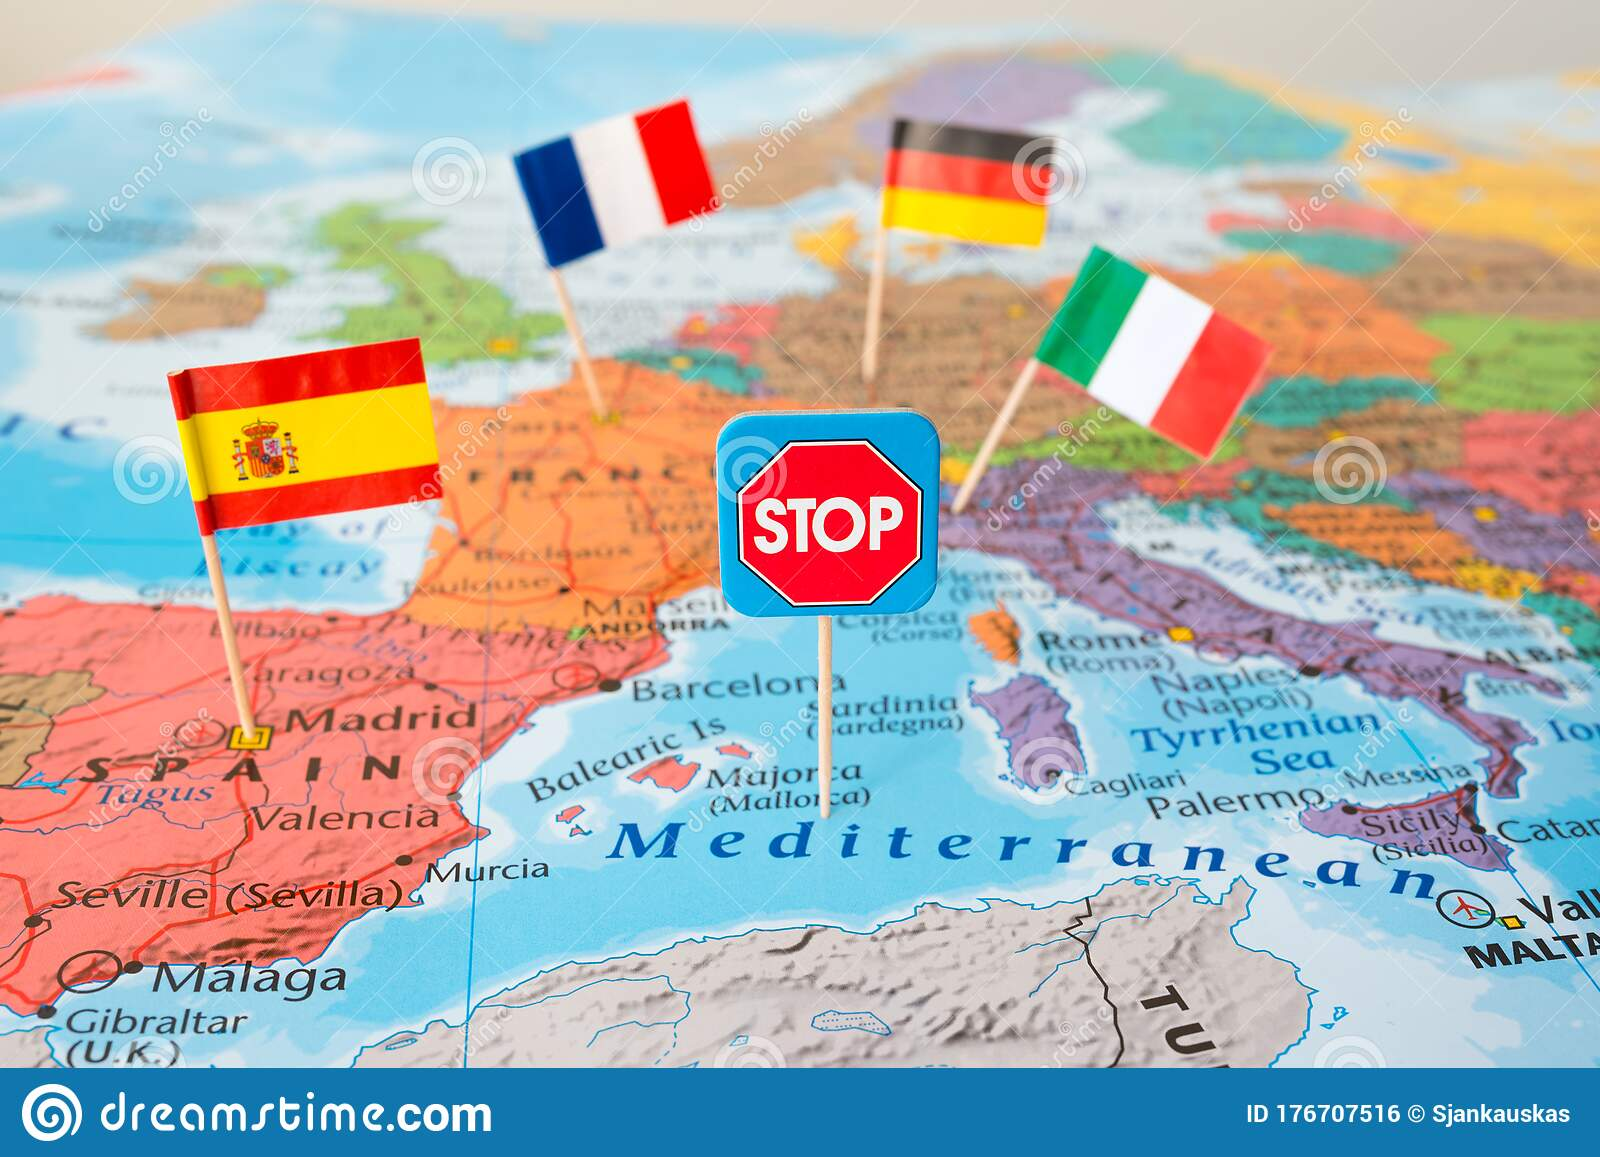 Image of: Europe Lockdown Concept Image Stop Coronavirus Flags Of Italy Germany France Spain On Map Travel Restrictions Border Shutdown Stock Photo Image Of Goal Detail 176707516